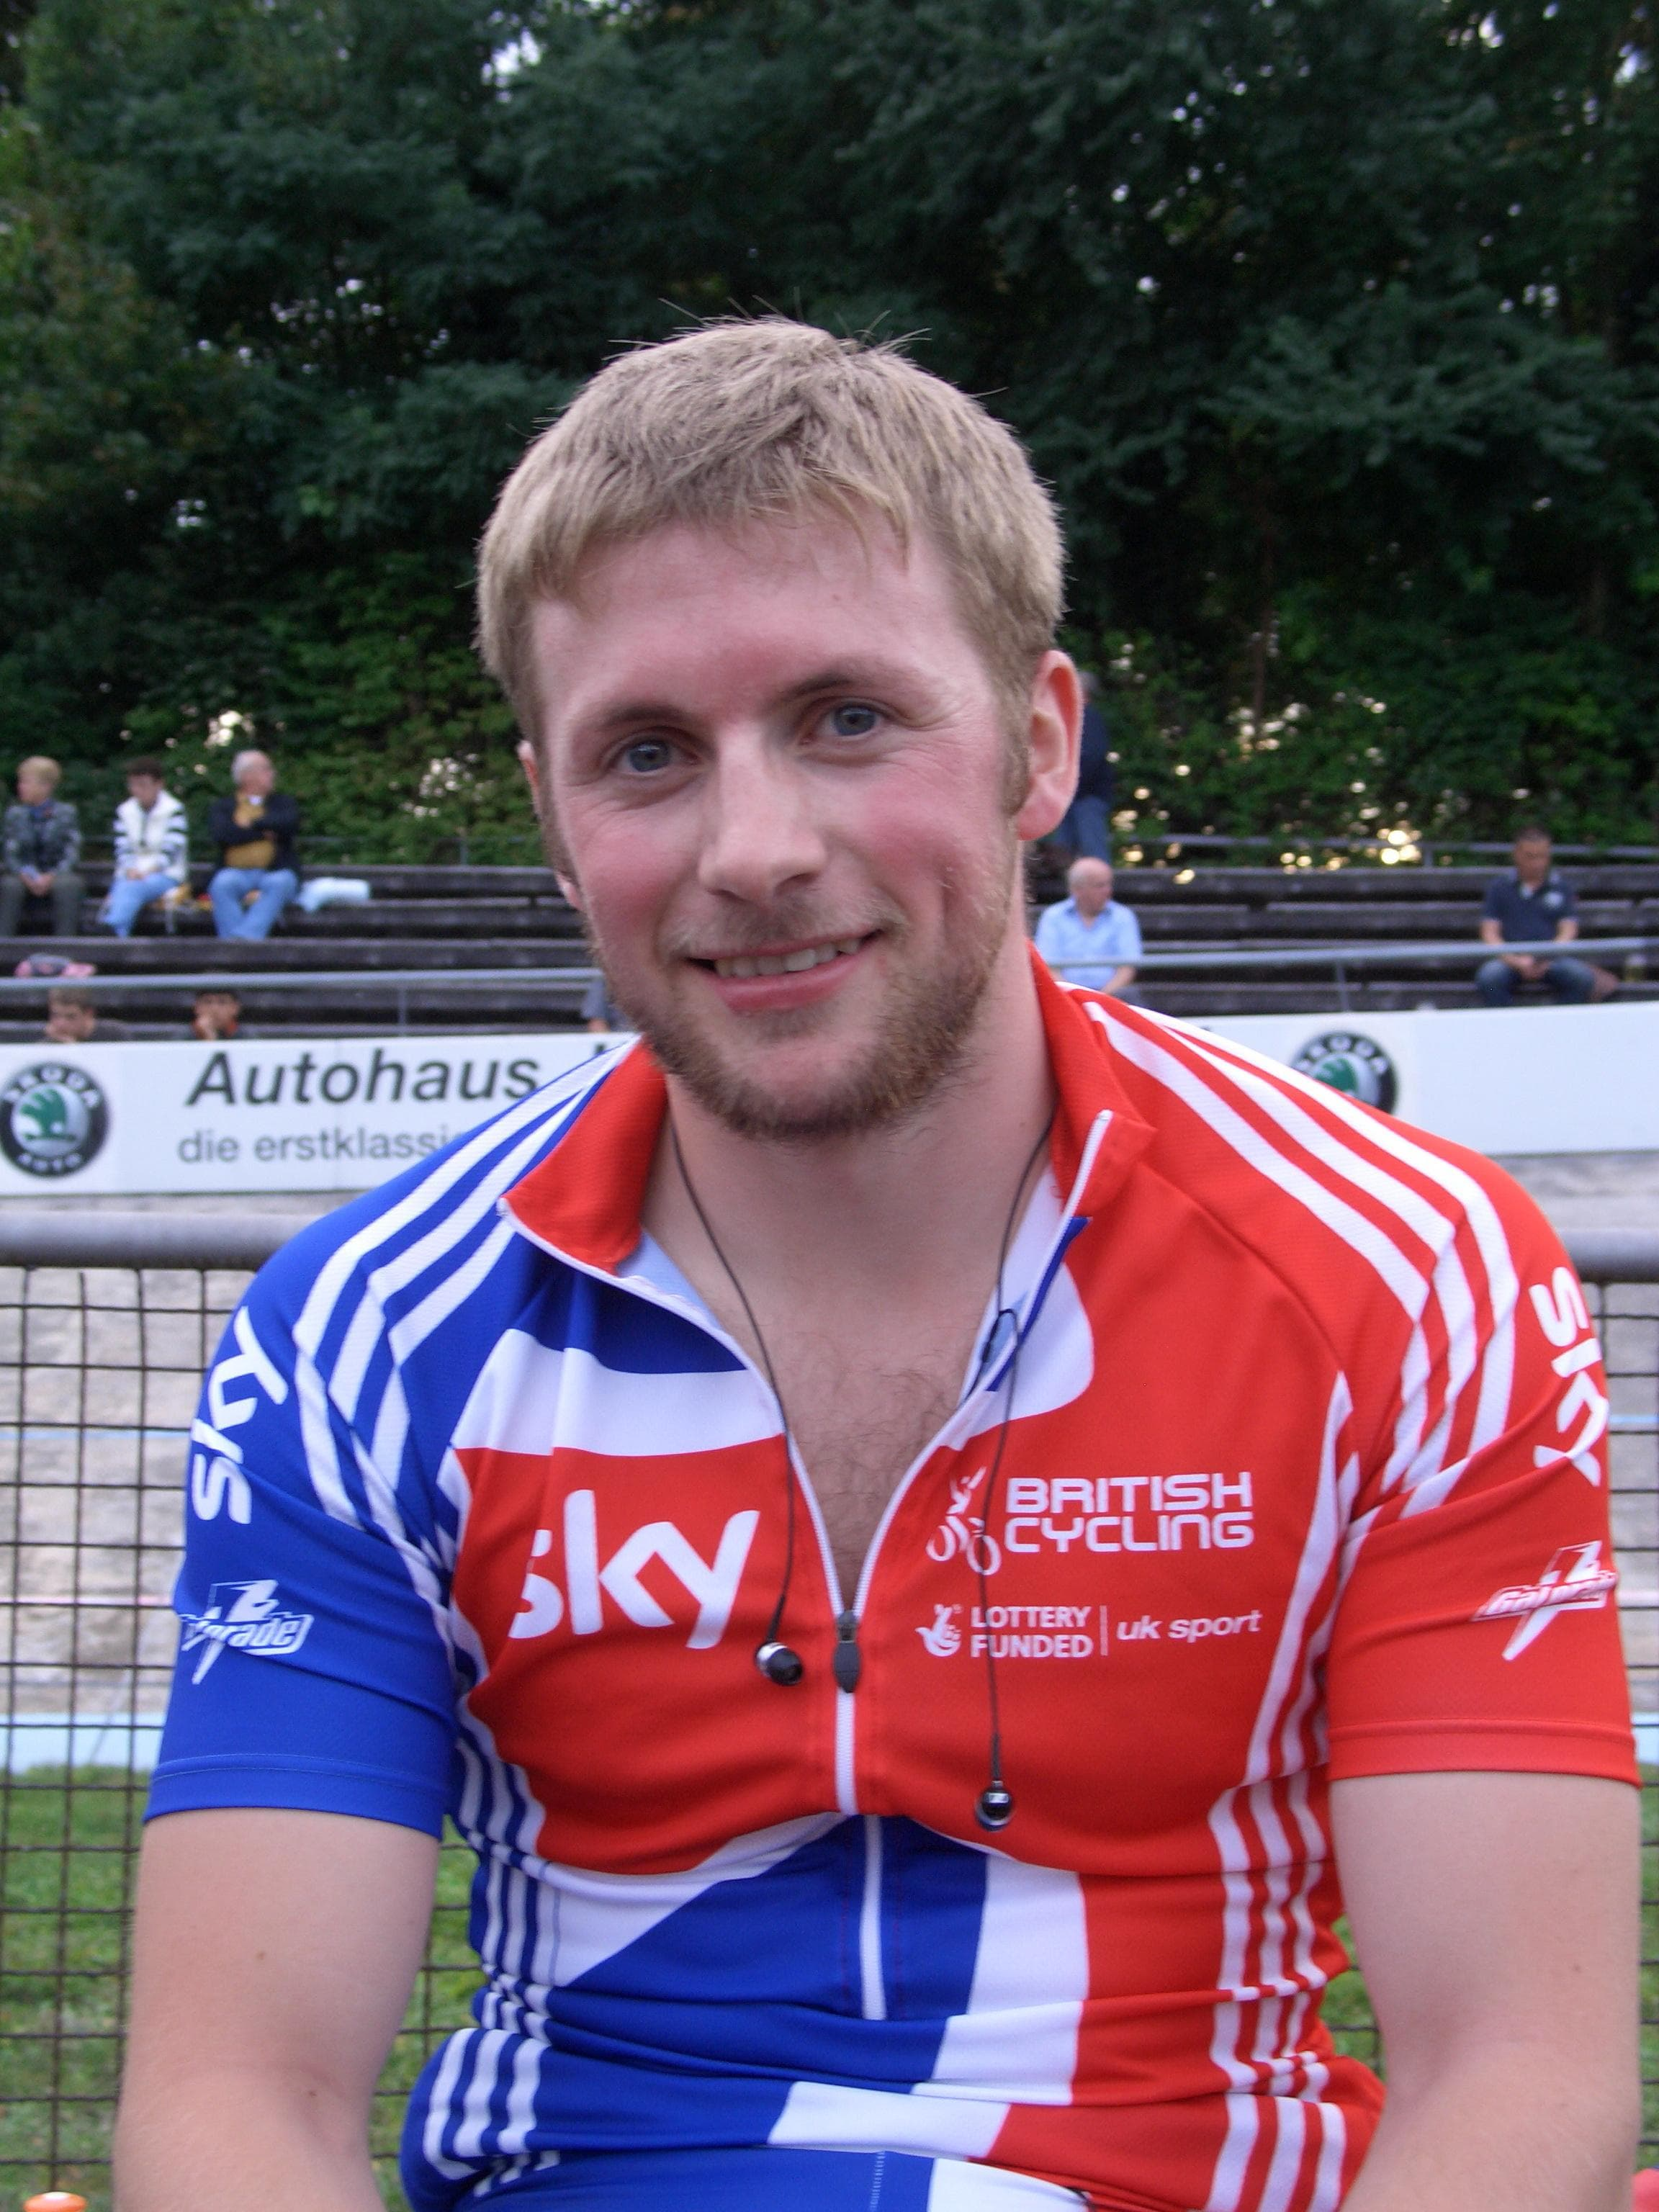 Random Best Olympic Athletes in Track Cycling